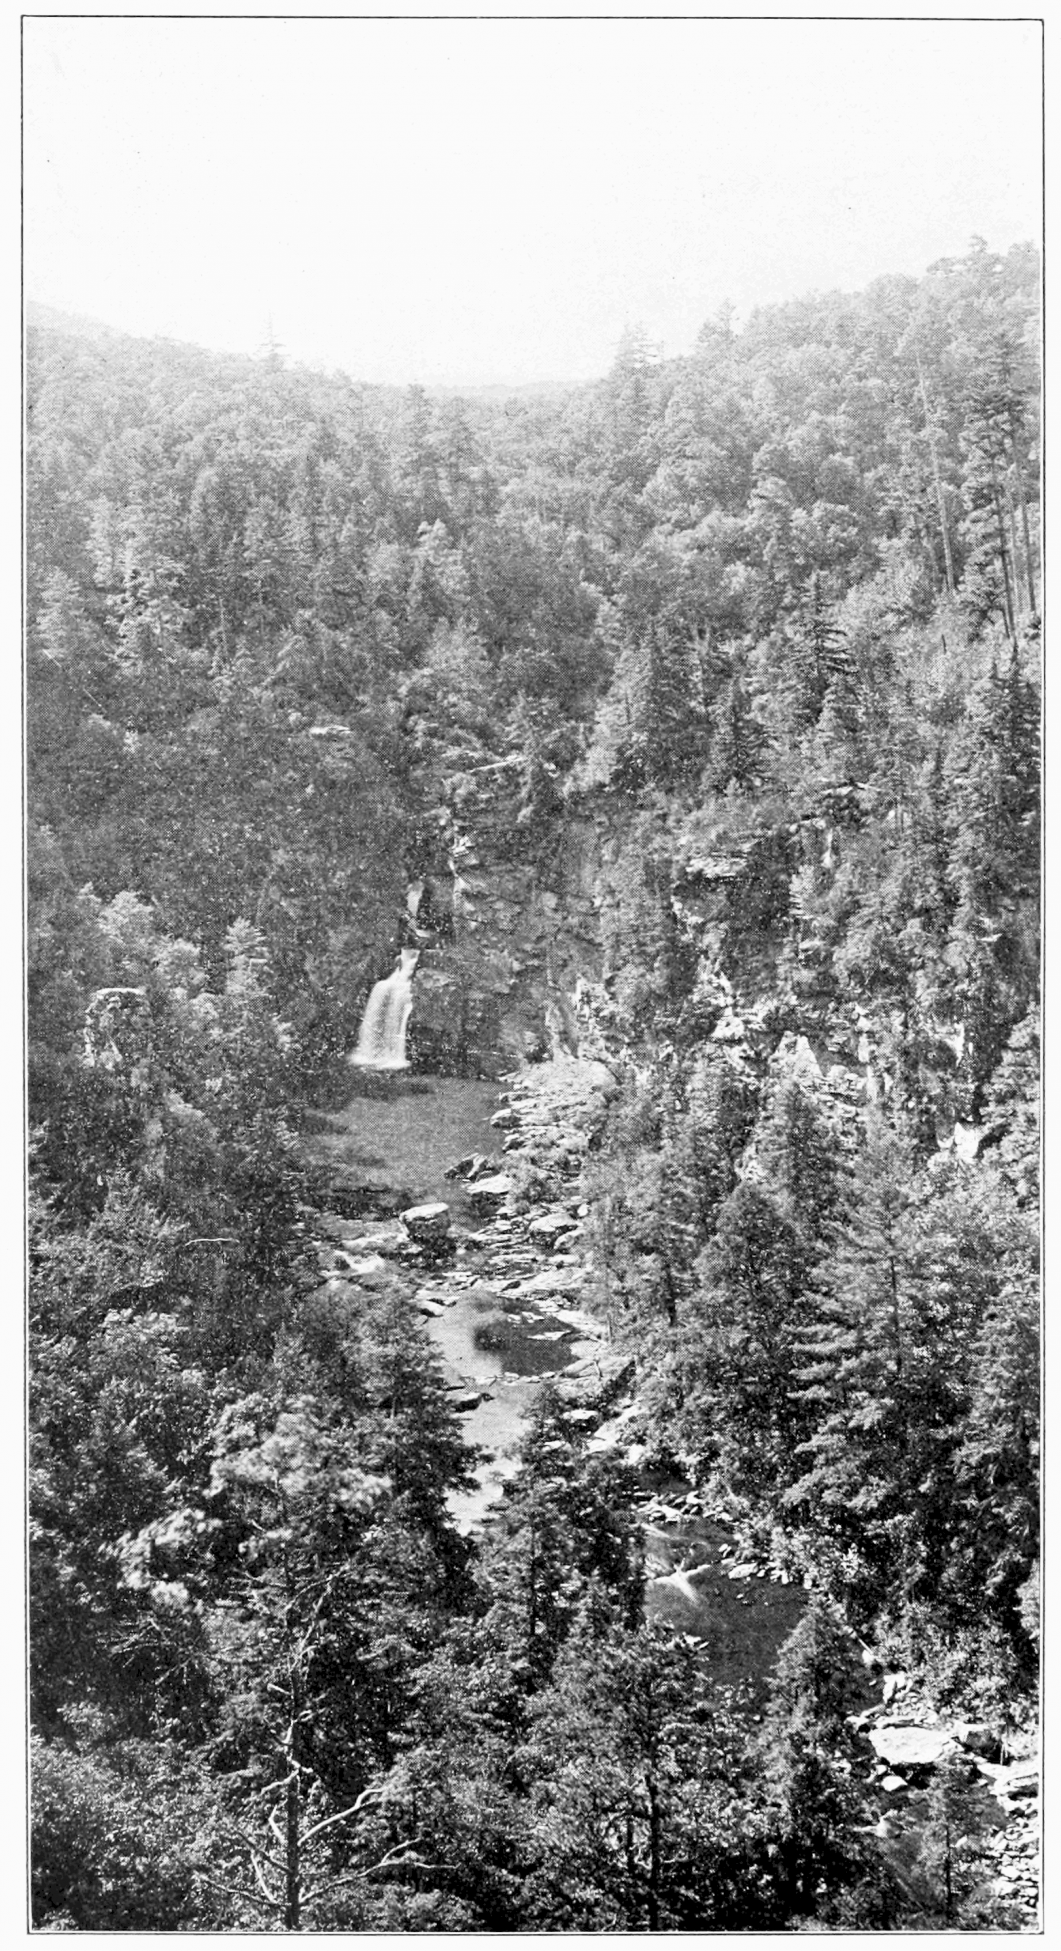 PSM_V73_D190_Linville_river_and_falls_mitchell_county_n_c